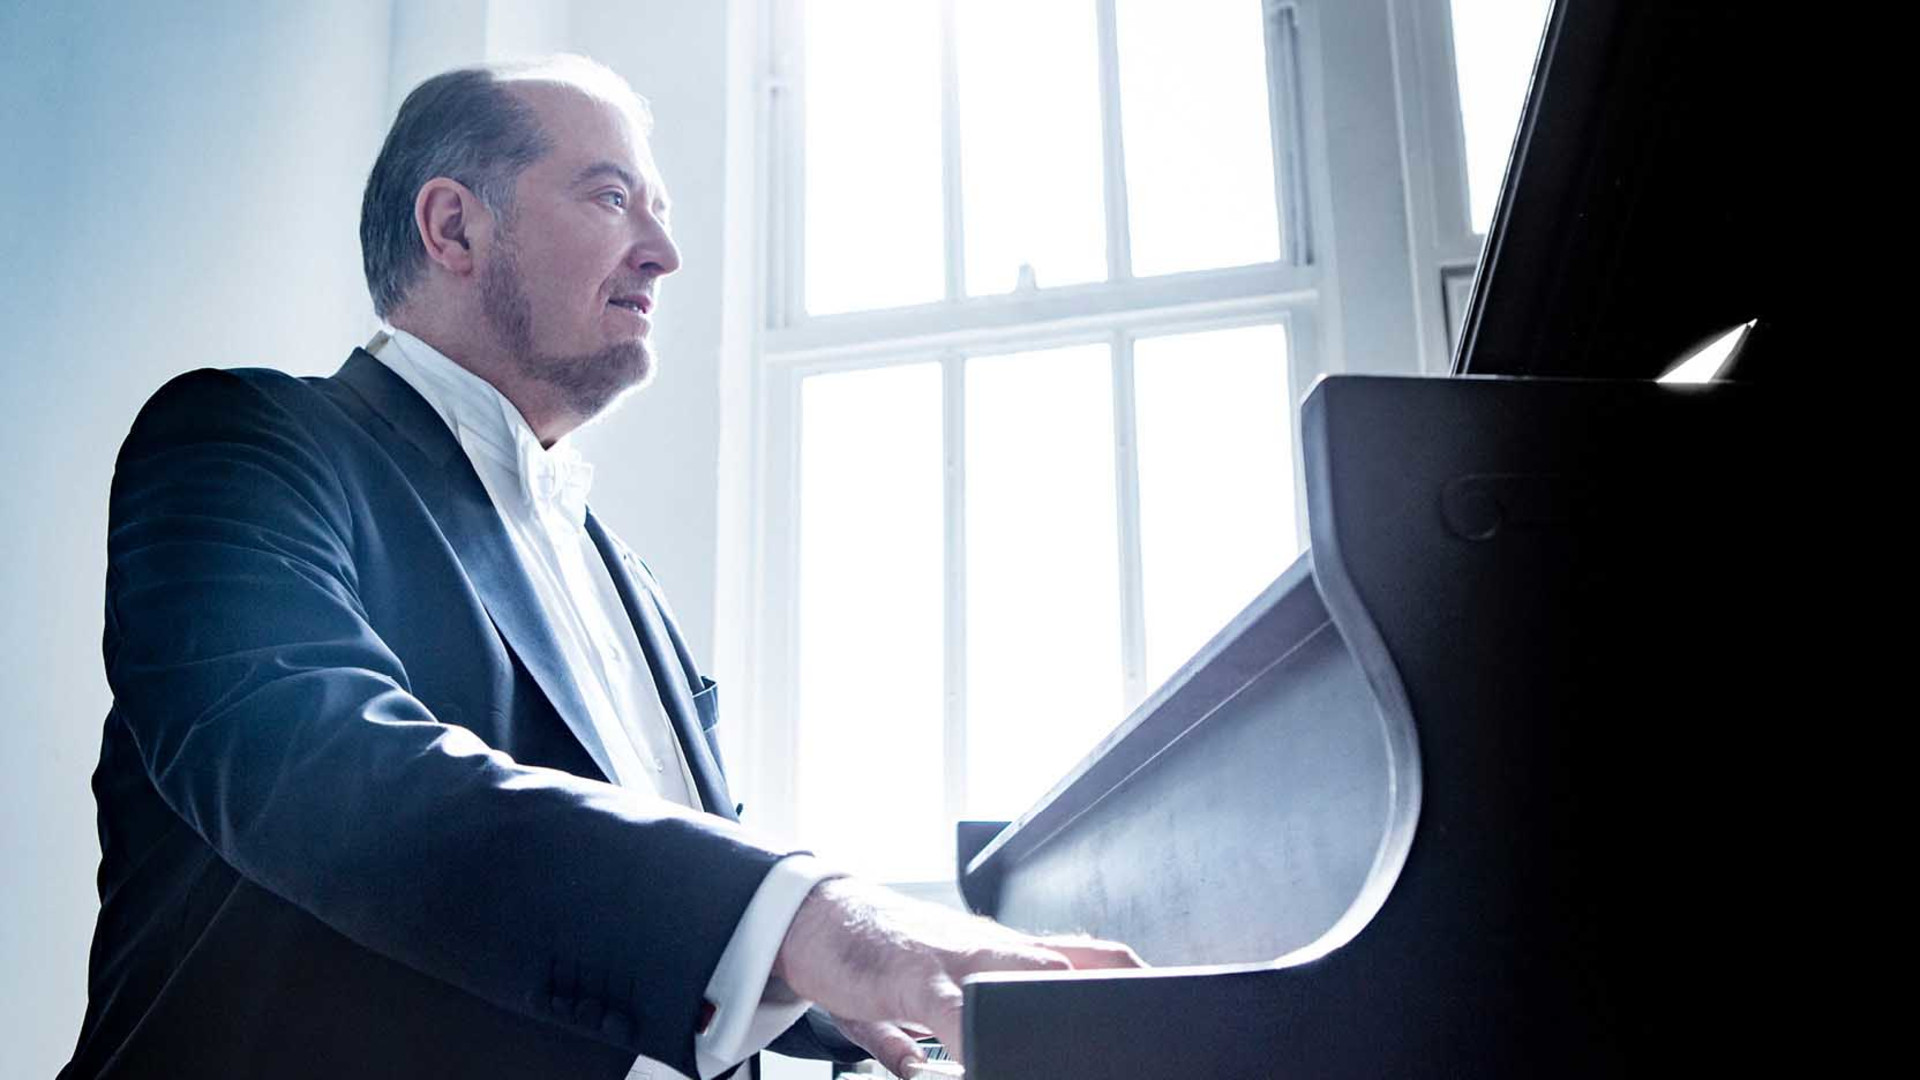 Rachmaninoff's Rhapsody on a Theme of Paganini, at Lincoln Center; Garrick Ohlsson, Piano